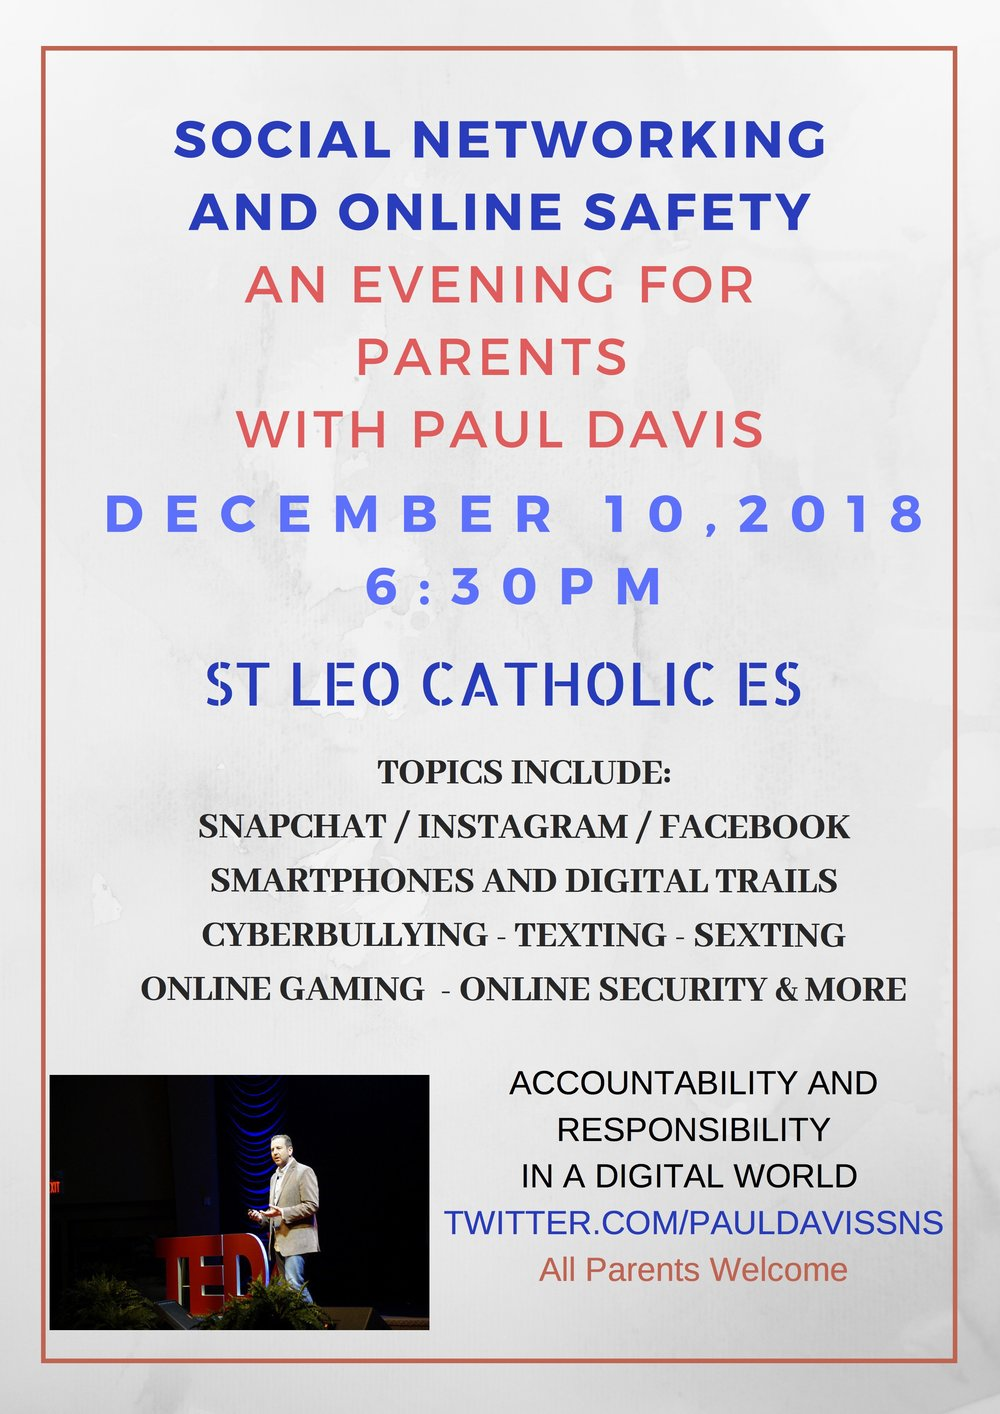 Paul Davis On Line Safety Presentation Dec 10 2018.jpg